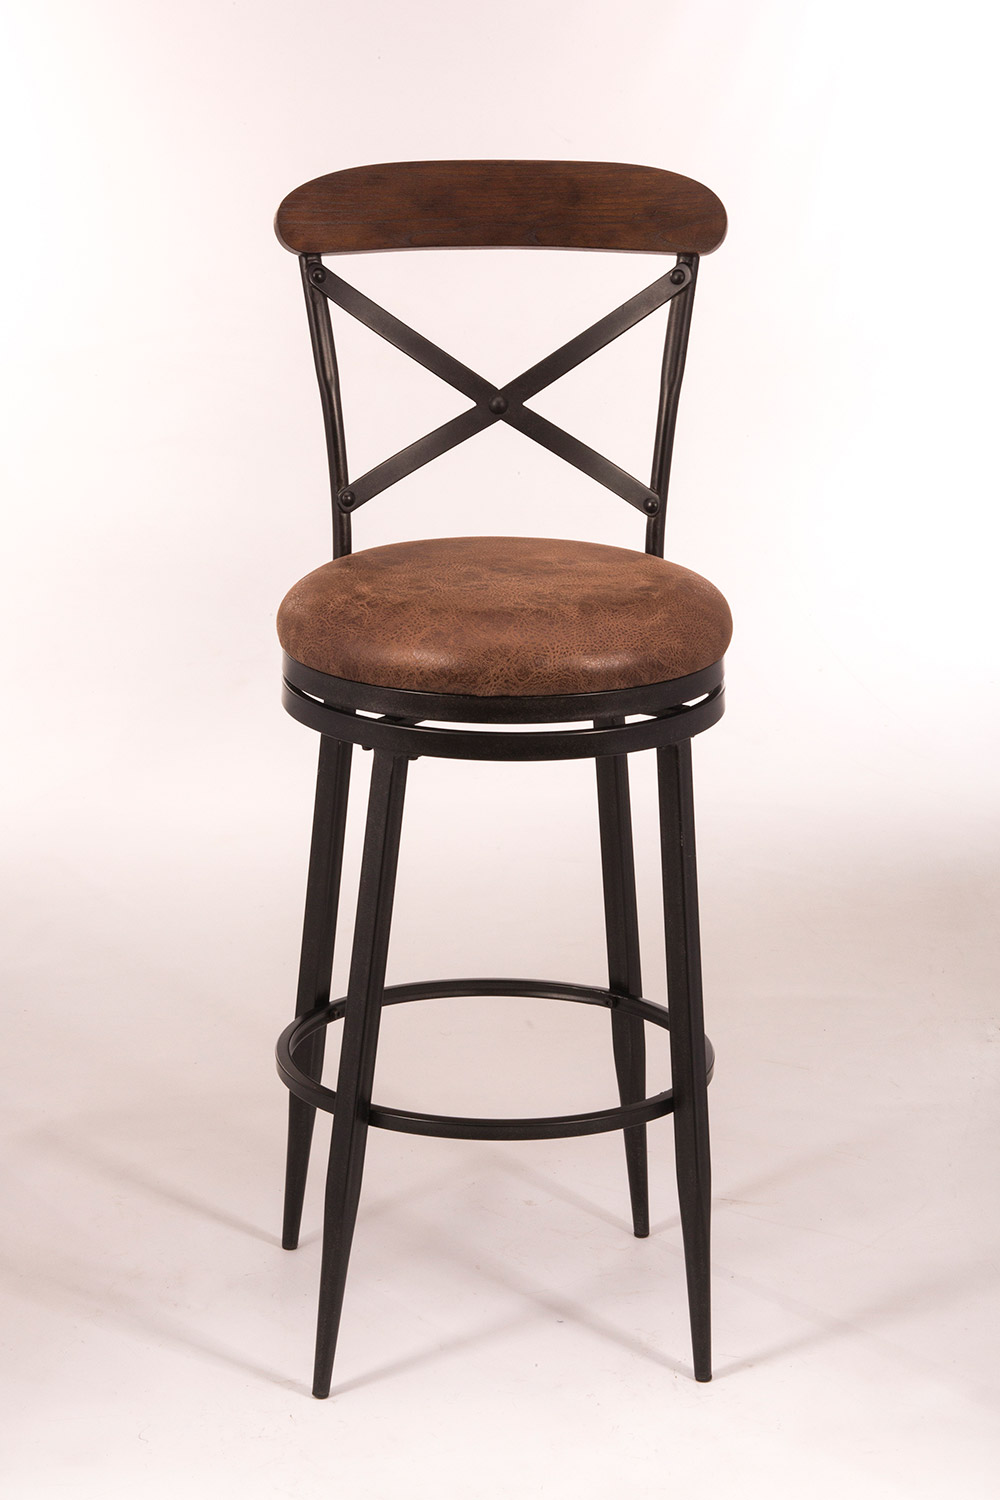 Hillsdale Henderson Swivel Counter Stool - Black/Brown Wood Top